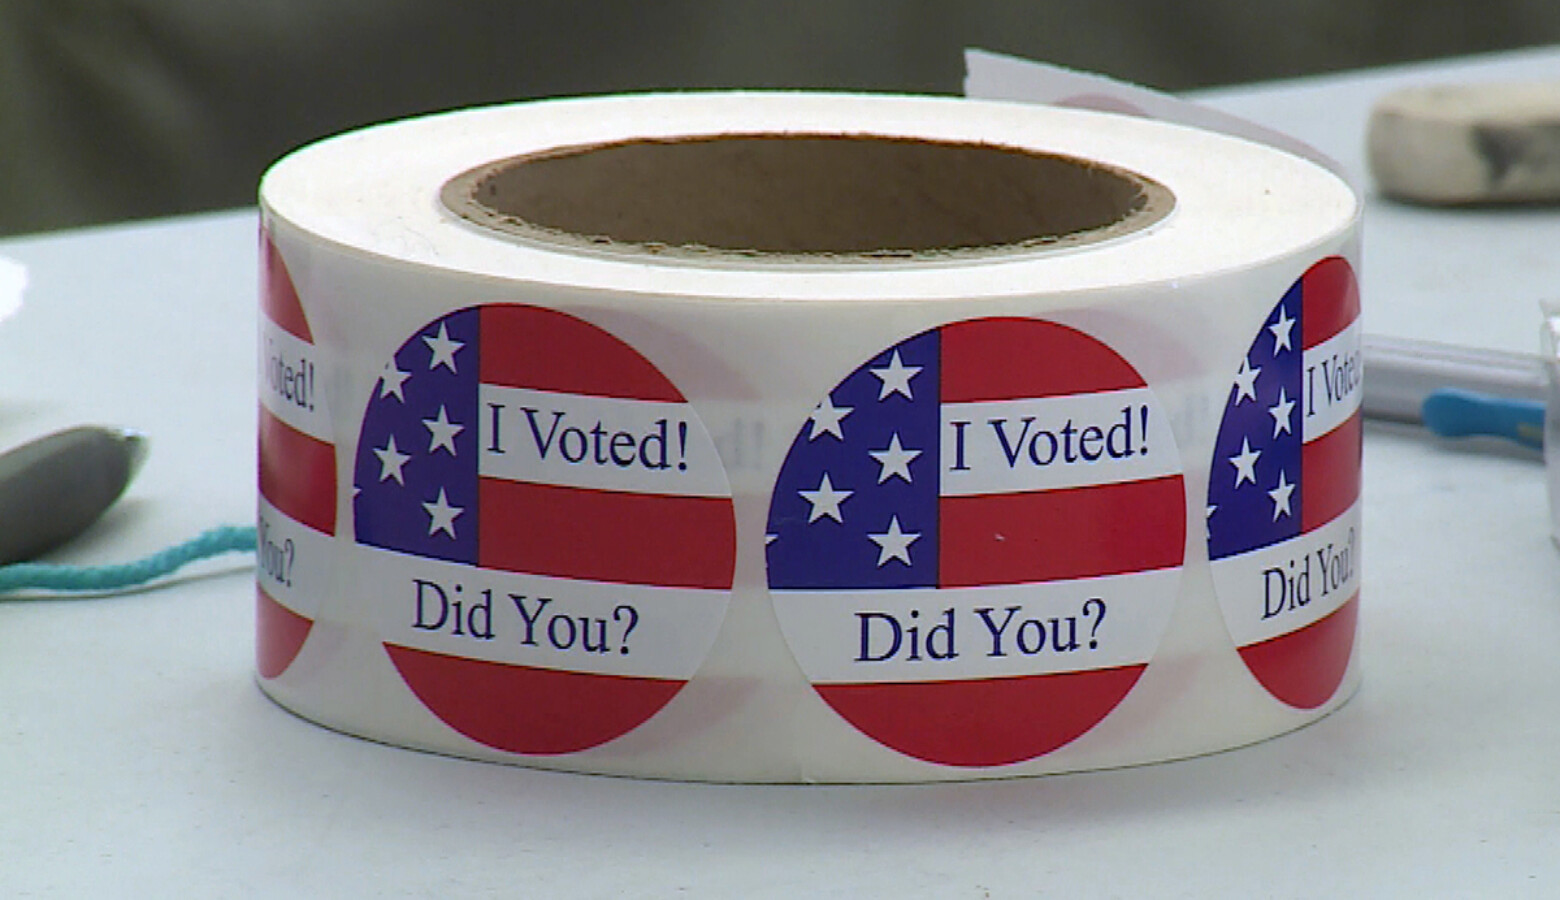 Nearly 550,000 Hoosiers requested absentee ballots for the 2020 primary - a huge increase from prior years after the state expanded vote-by-mail to anyone who wanted it. (FILE PHOTO: Steve Burns/WTIU)